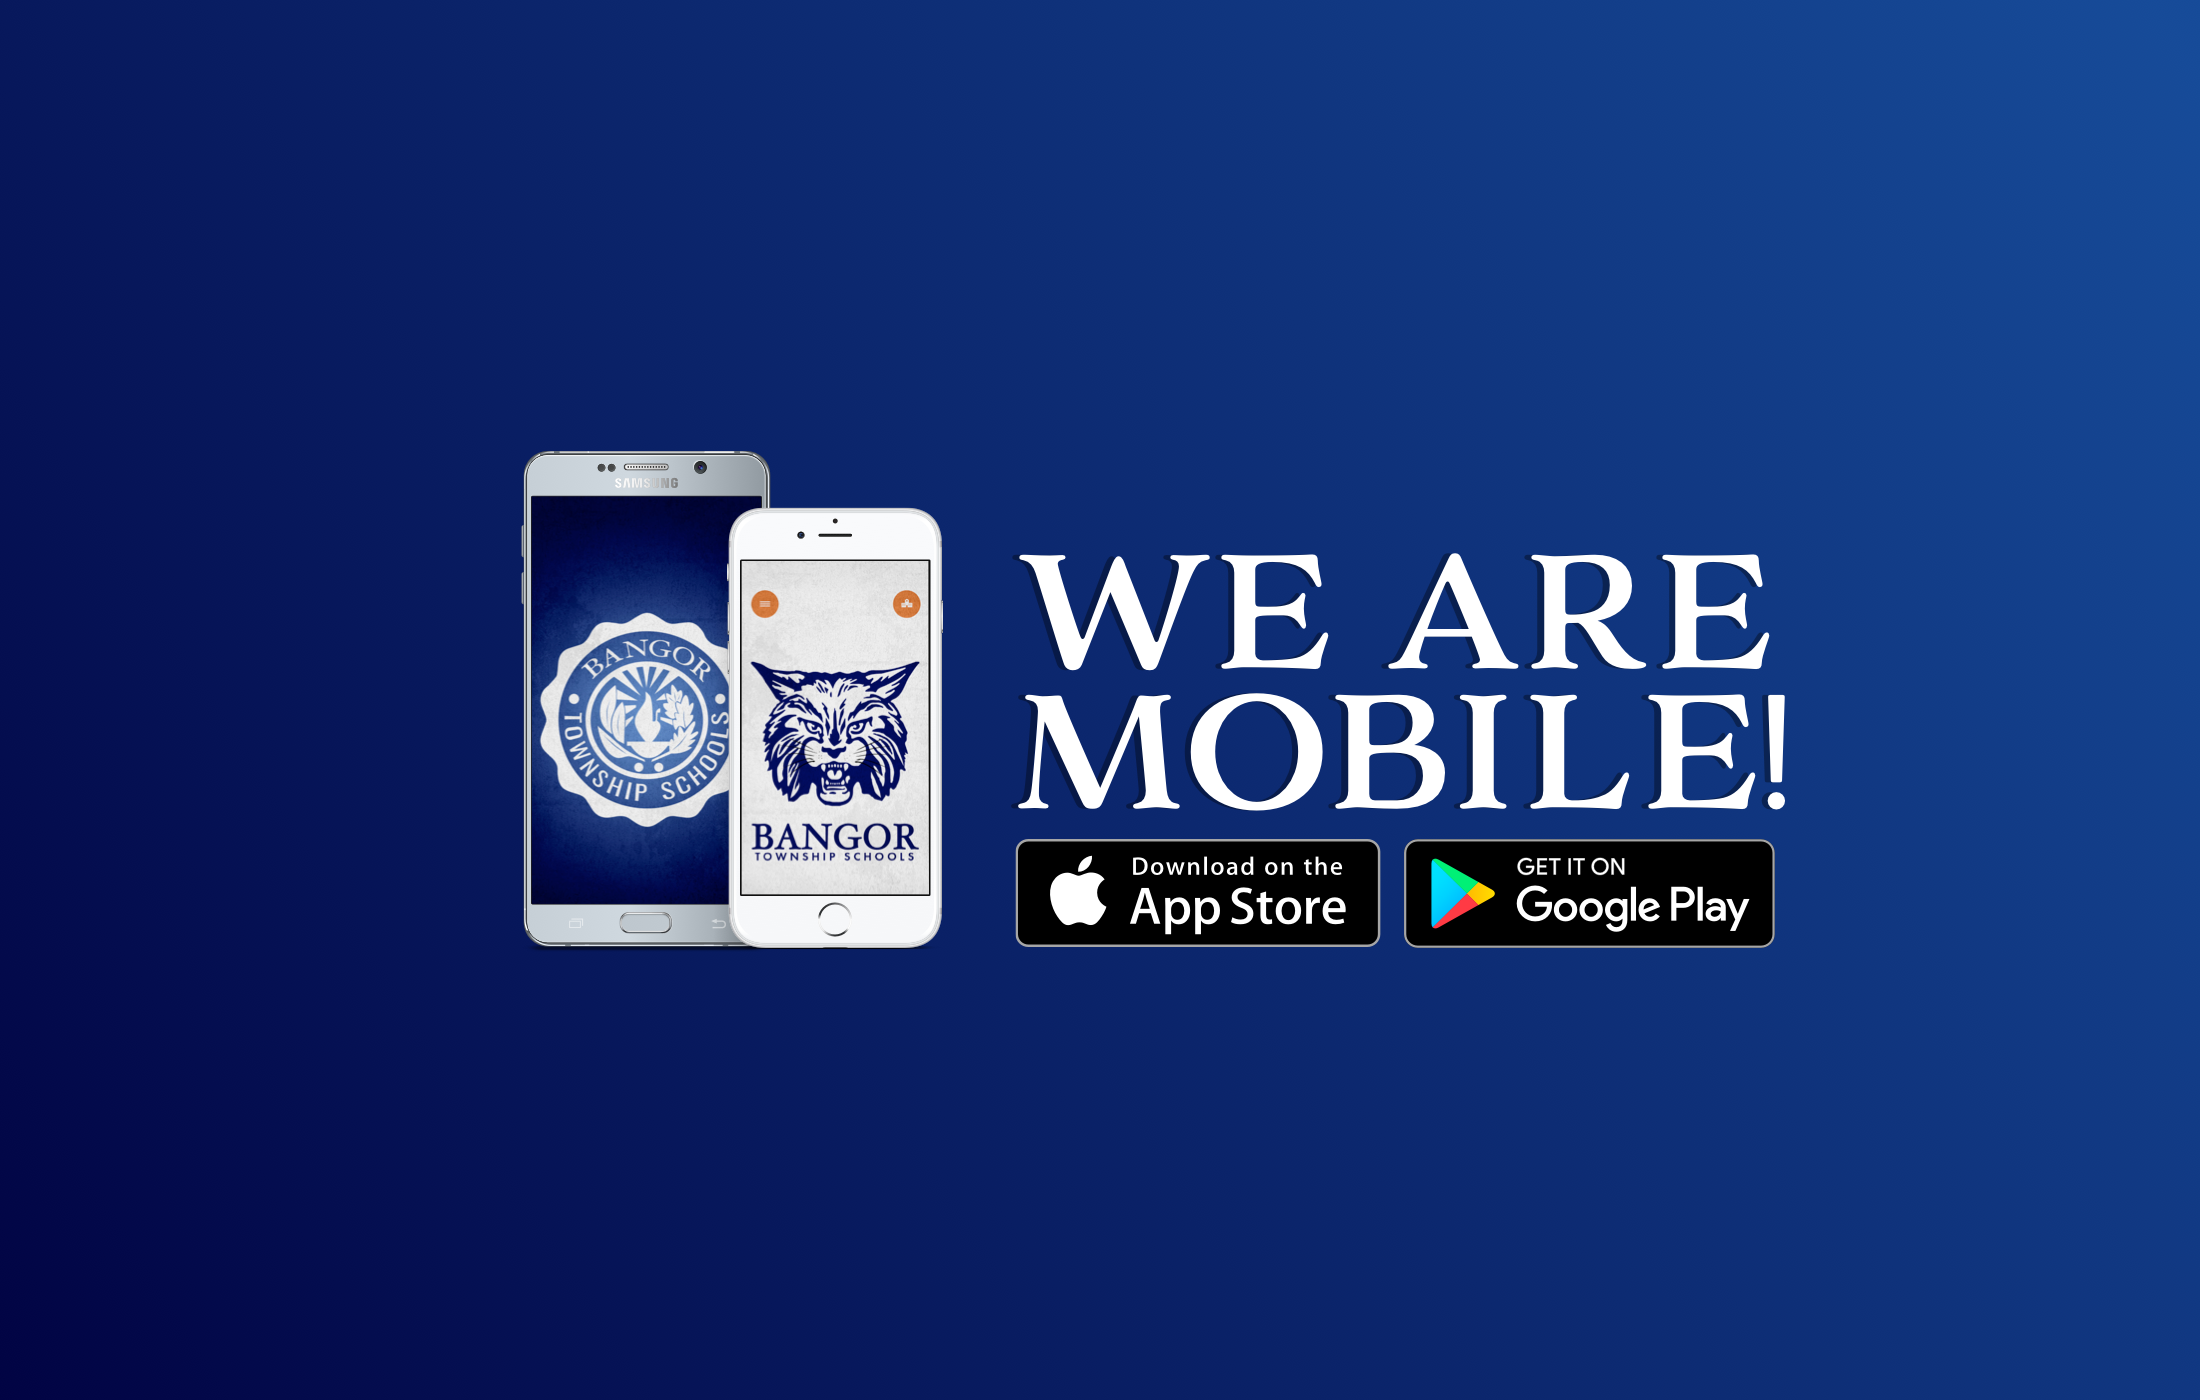 We Are Mobile